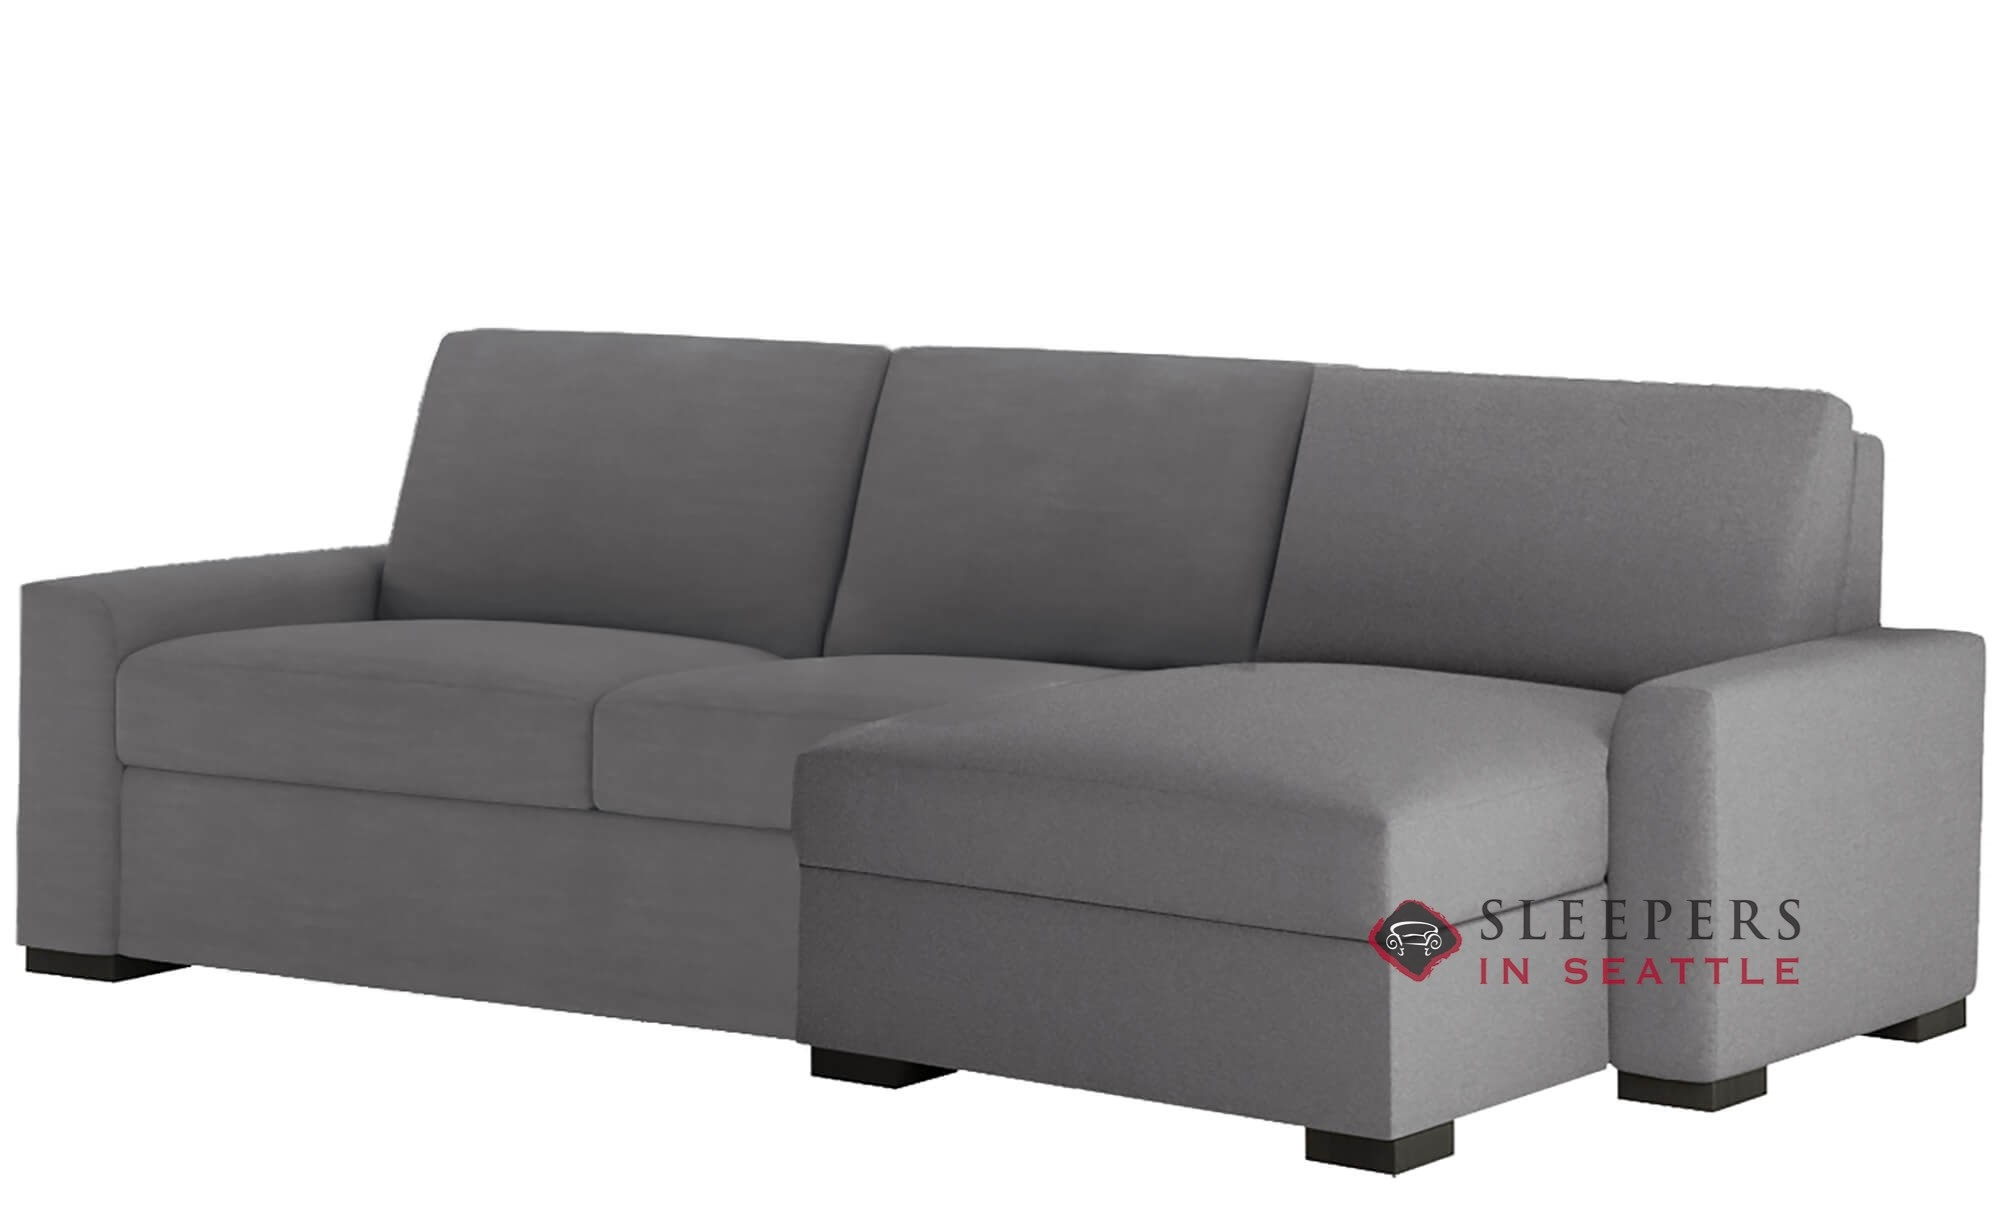 American Leather Olson Low Leg Queen Plus With Chaise Sectional Comfort Sleeper Generation Viii